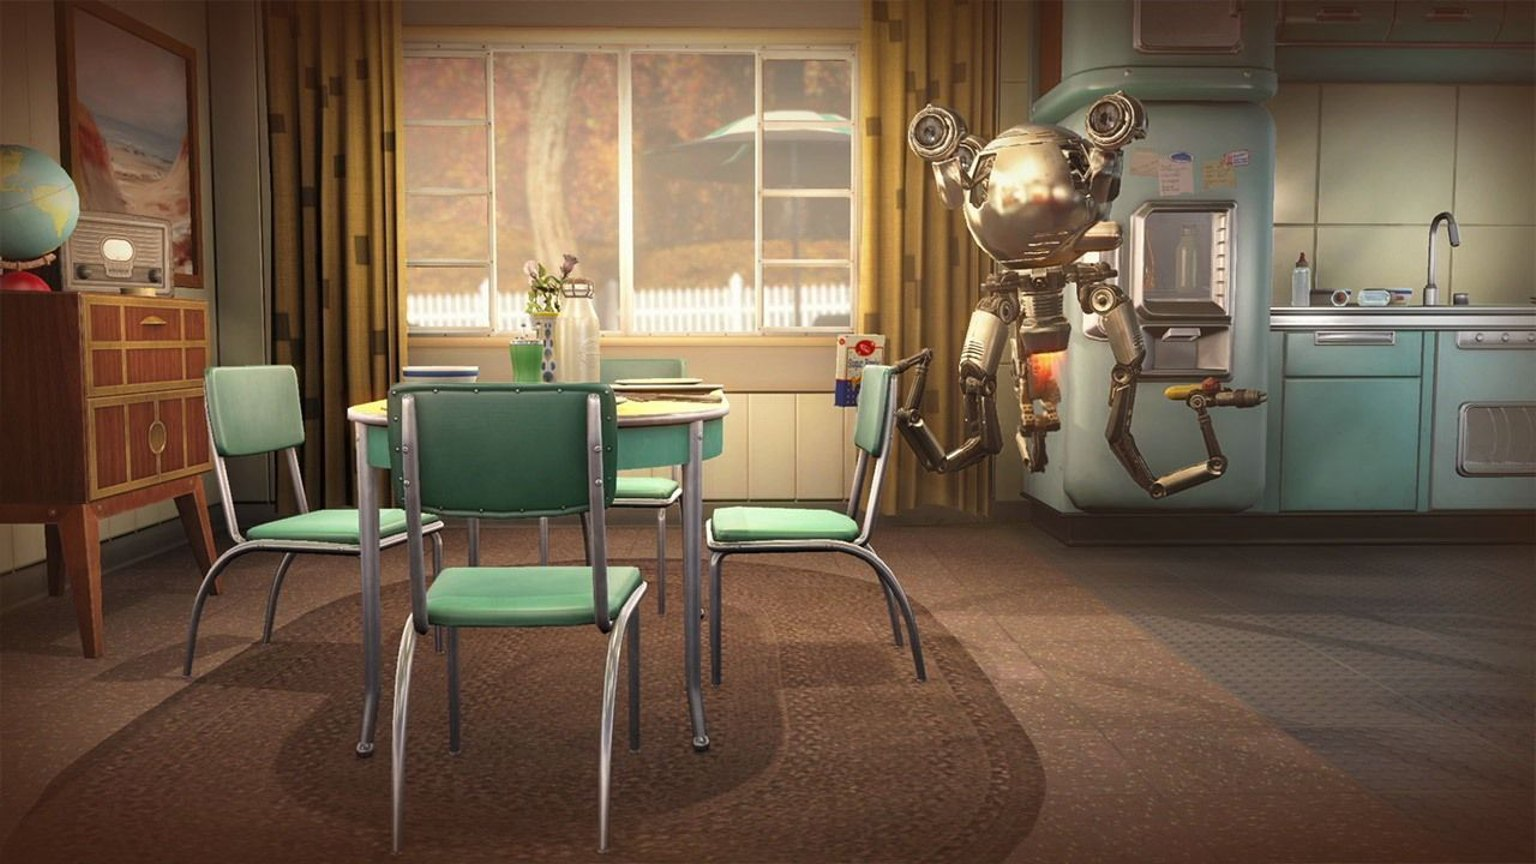 What are your first impressions of Fallout 4?